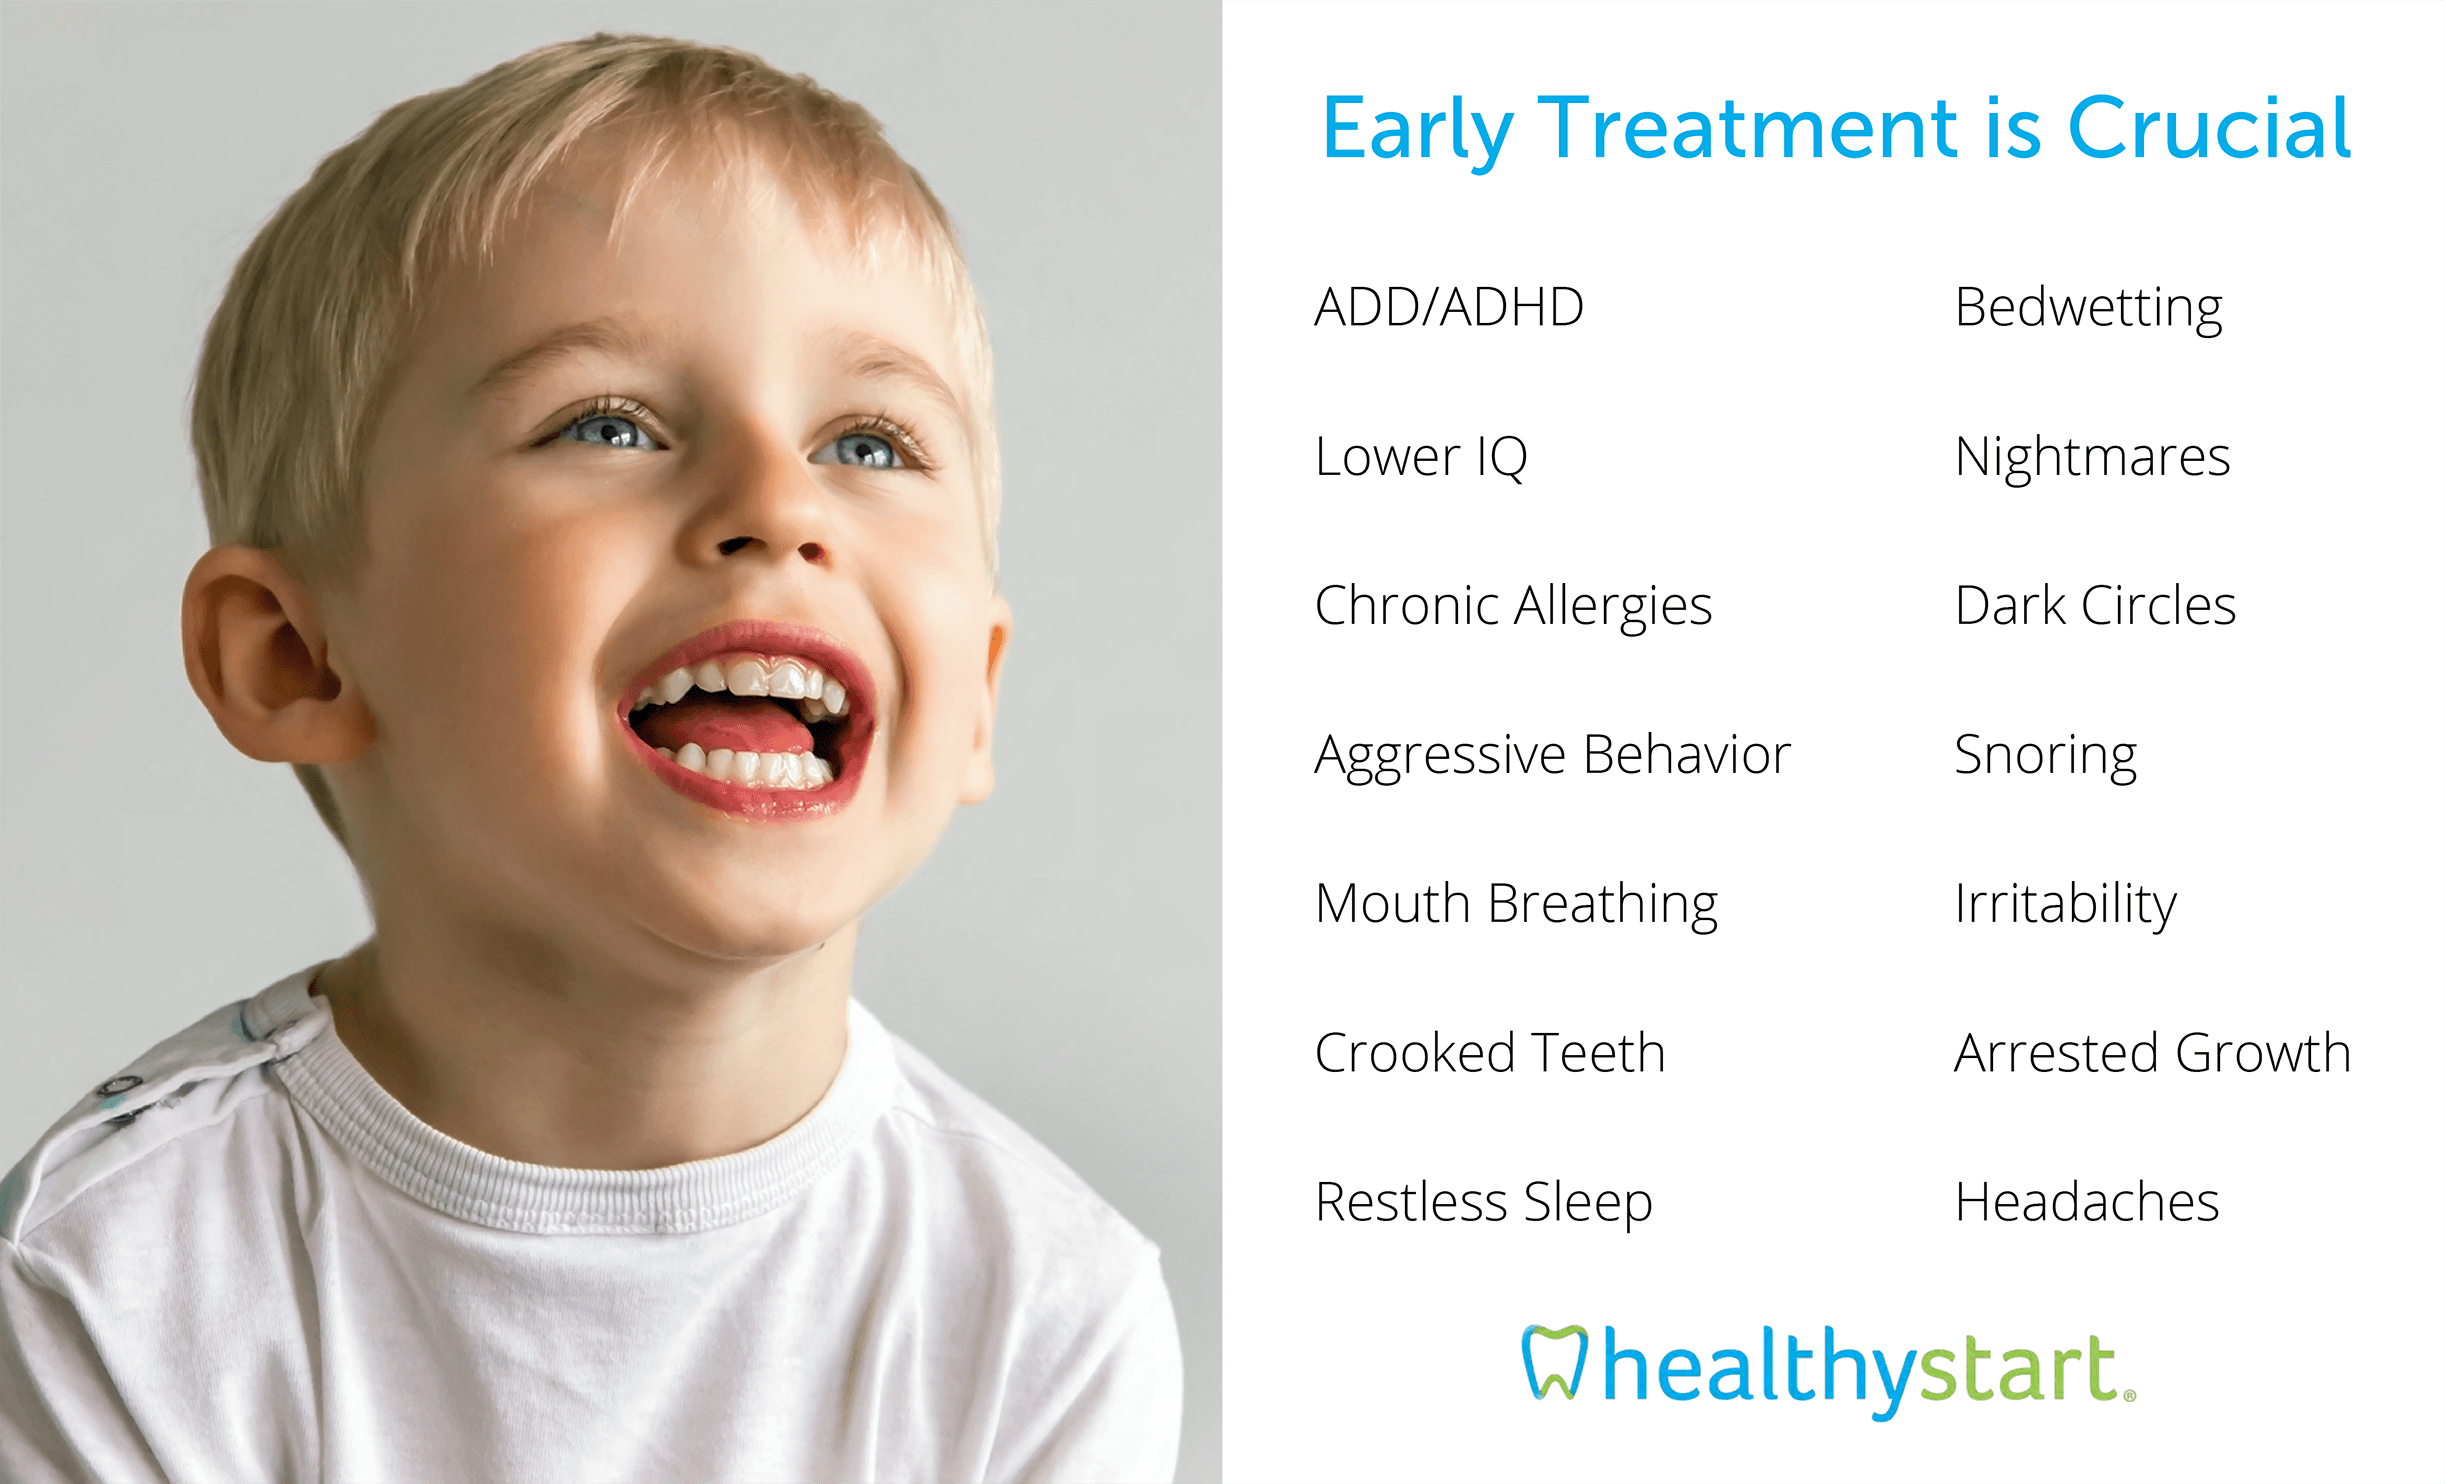 Early Treatment